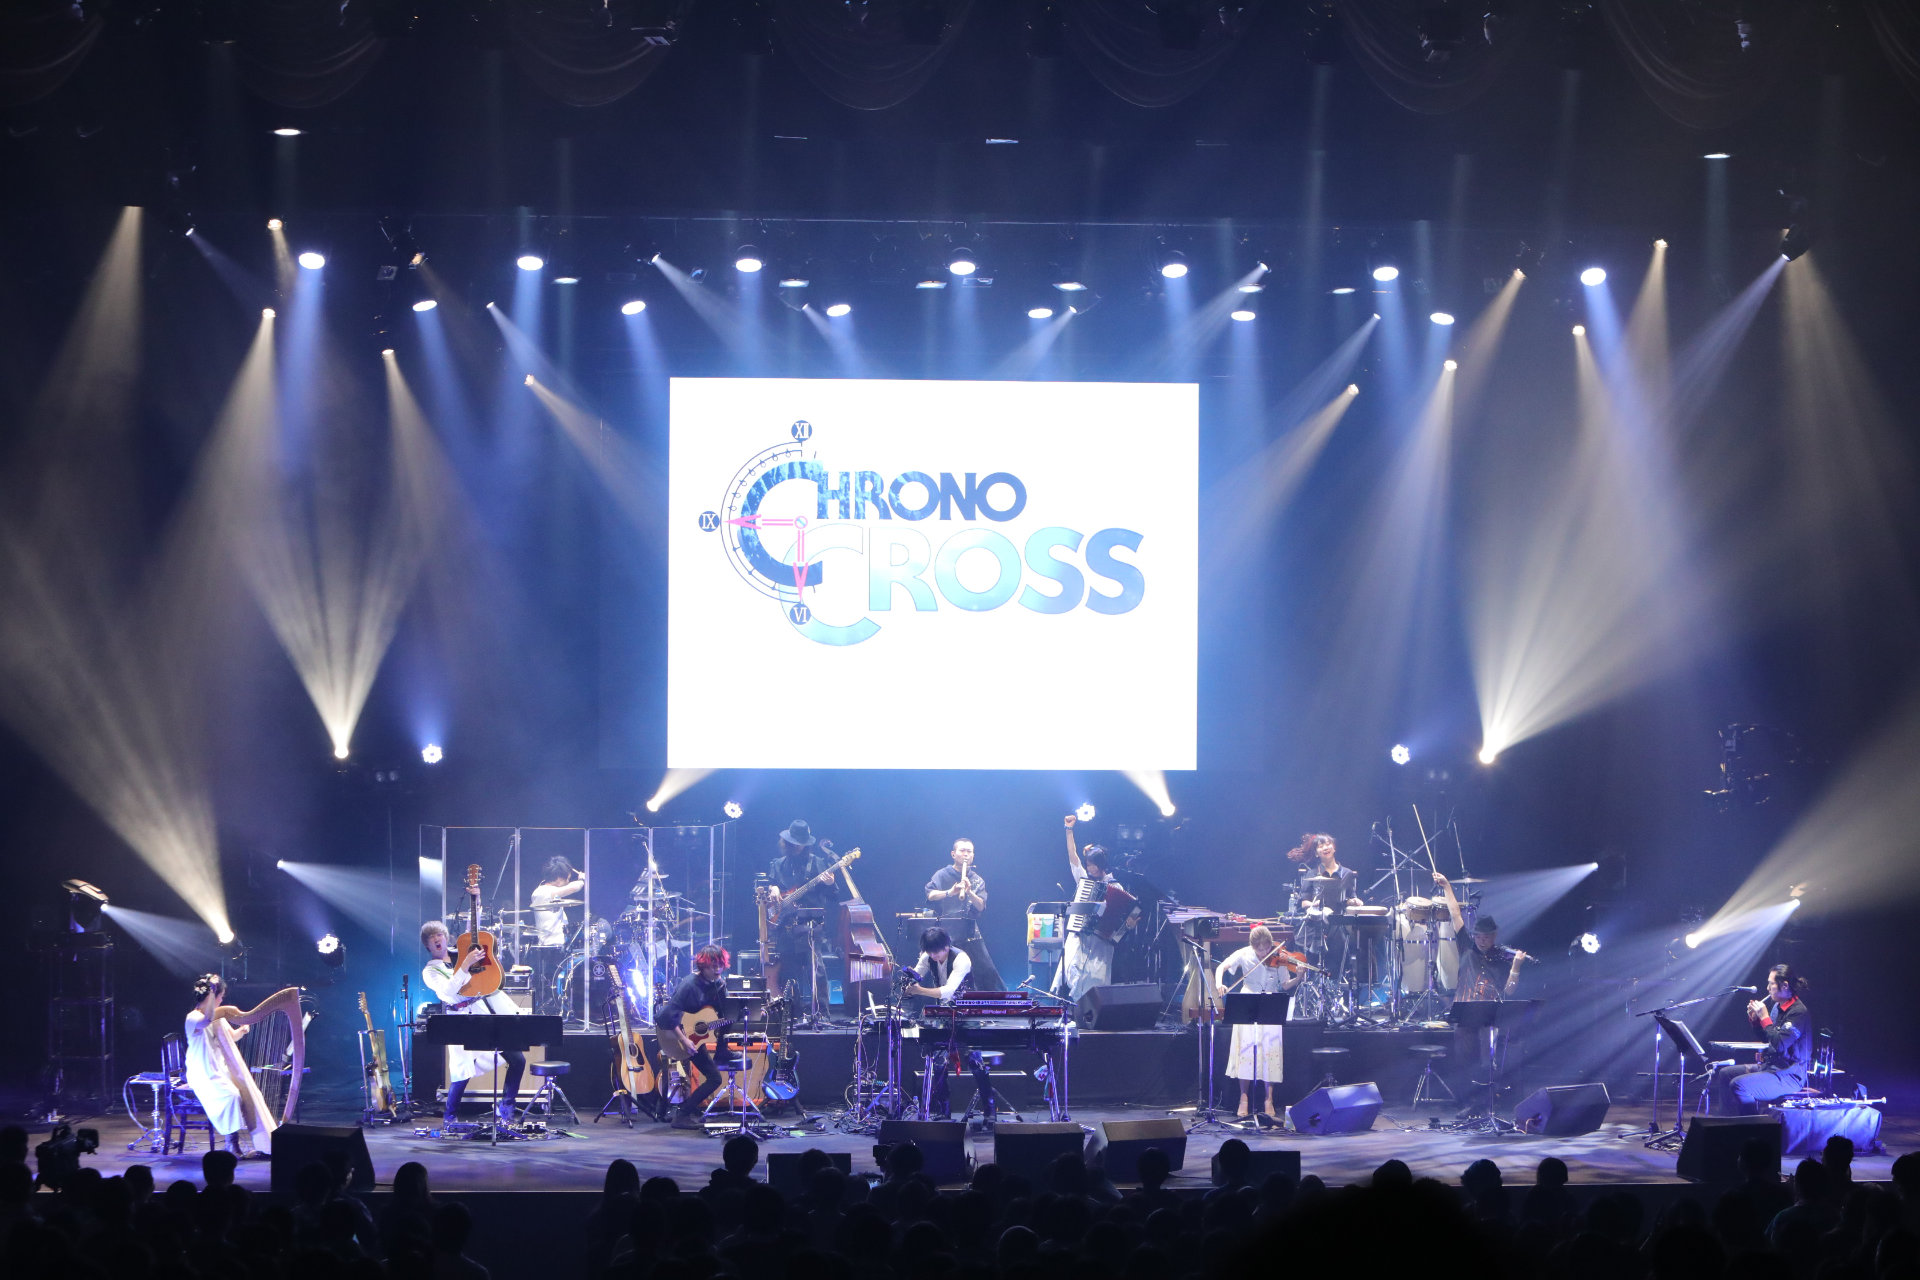 Concert photo showing the full stage of musicians performing with the Chrono Cross logo on a screen.